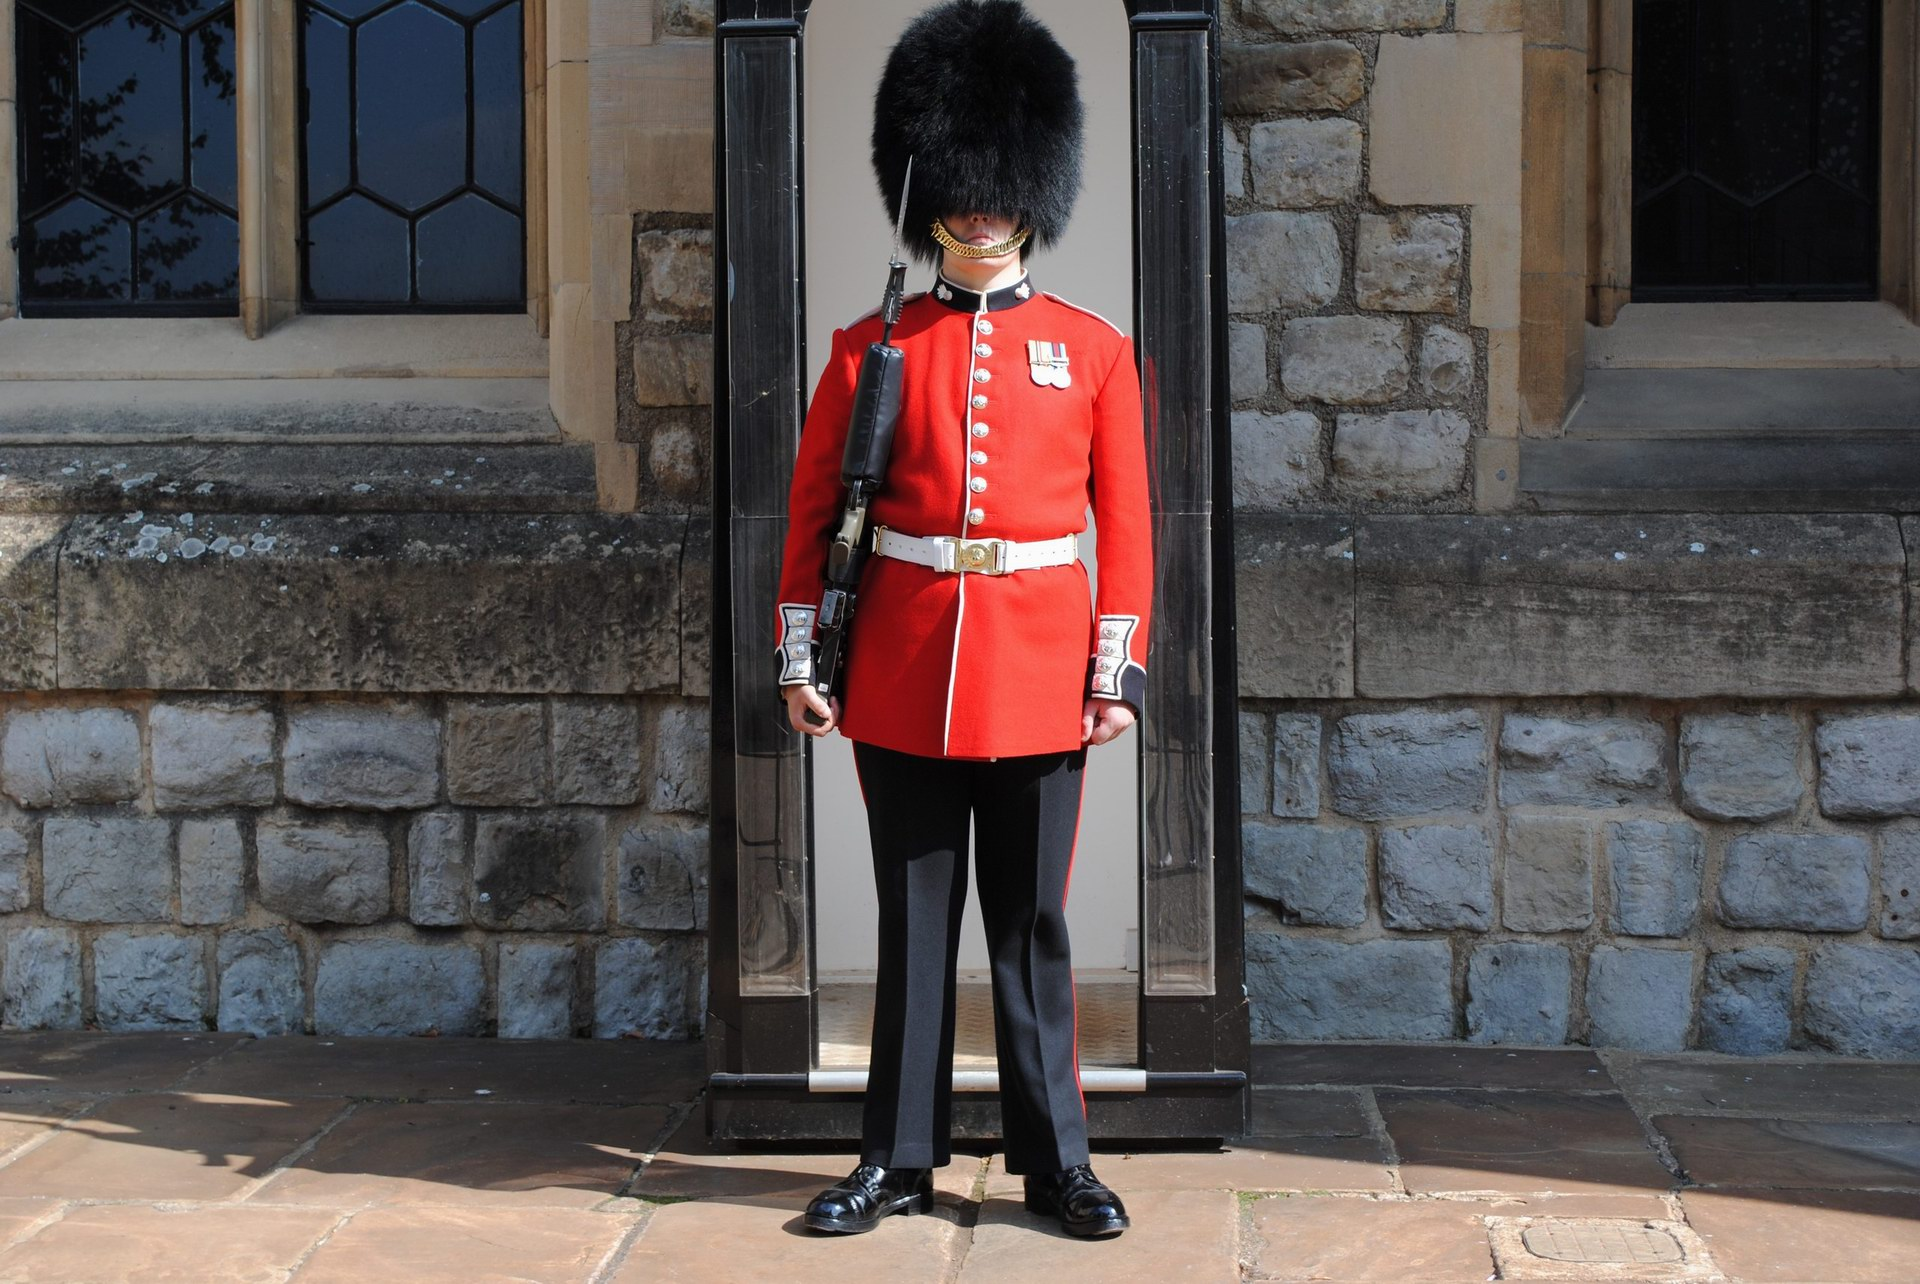 A static, fast, secure and easy to deploy Buckingham's guard